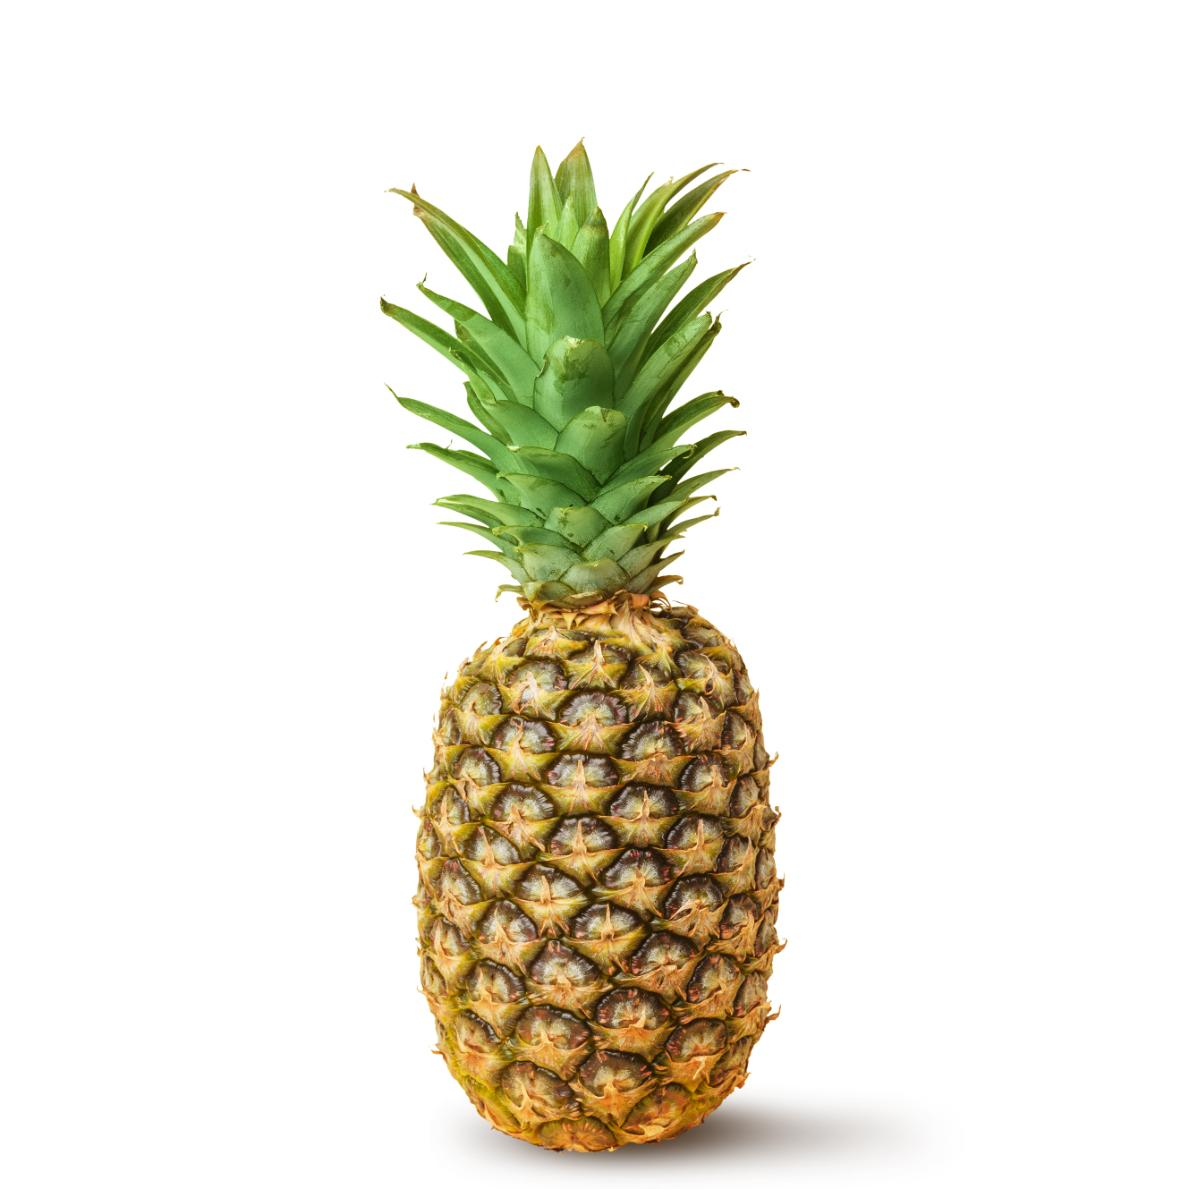 Organically grown Pine Apple